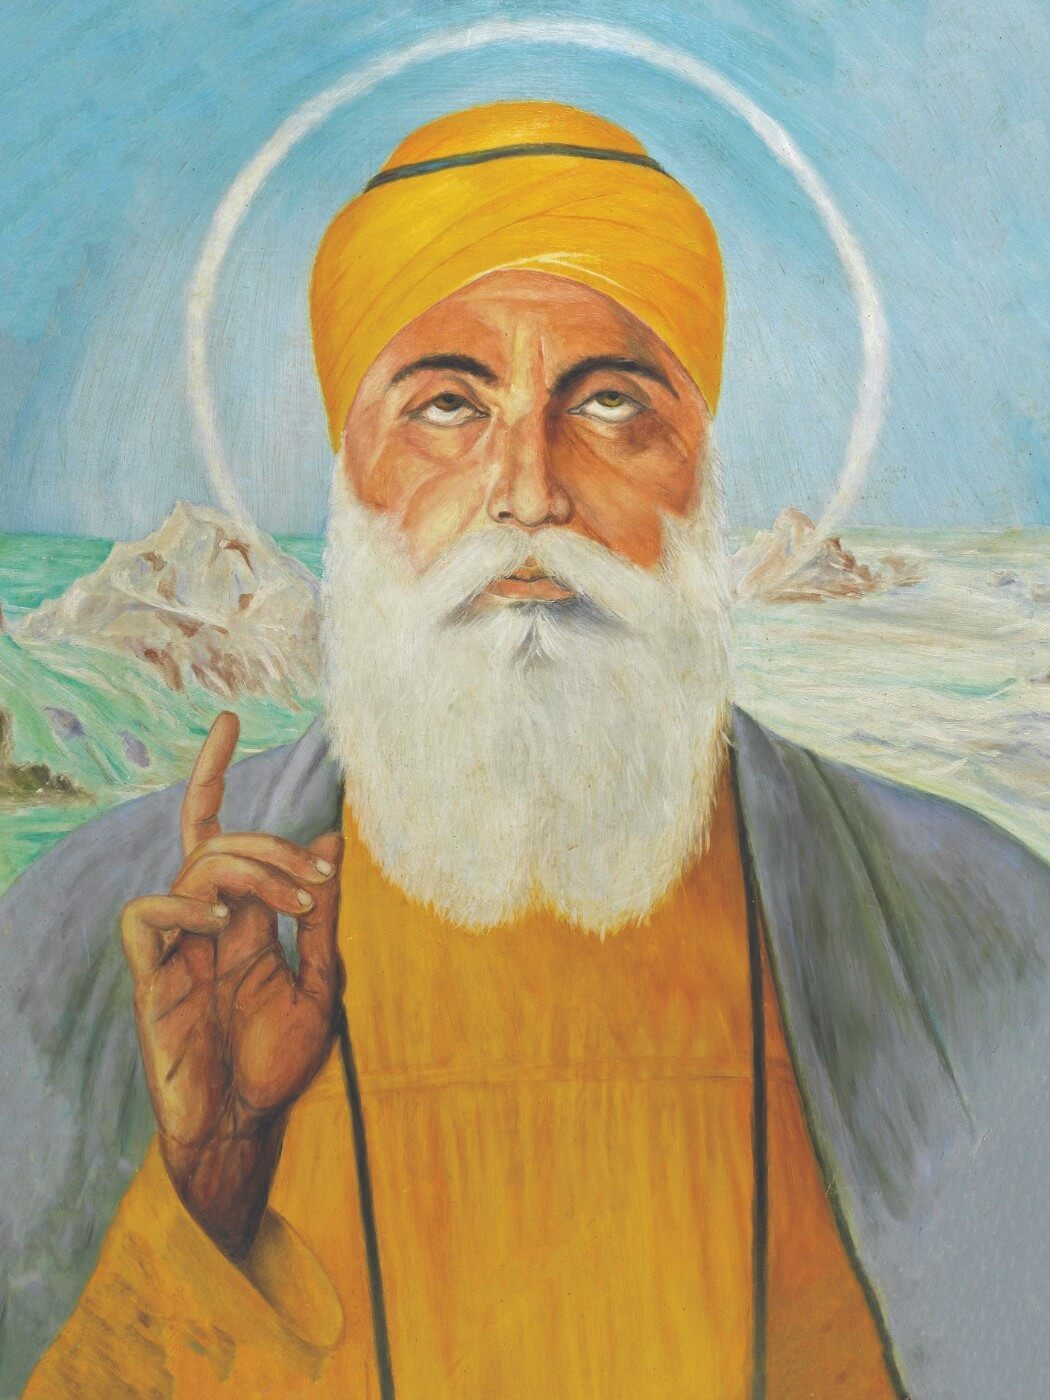 Paintings of the Sikhs